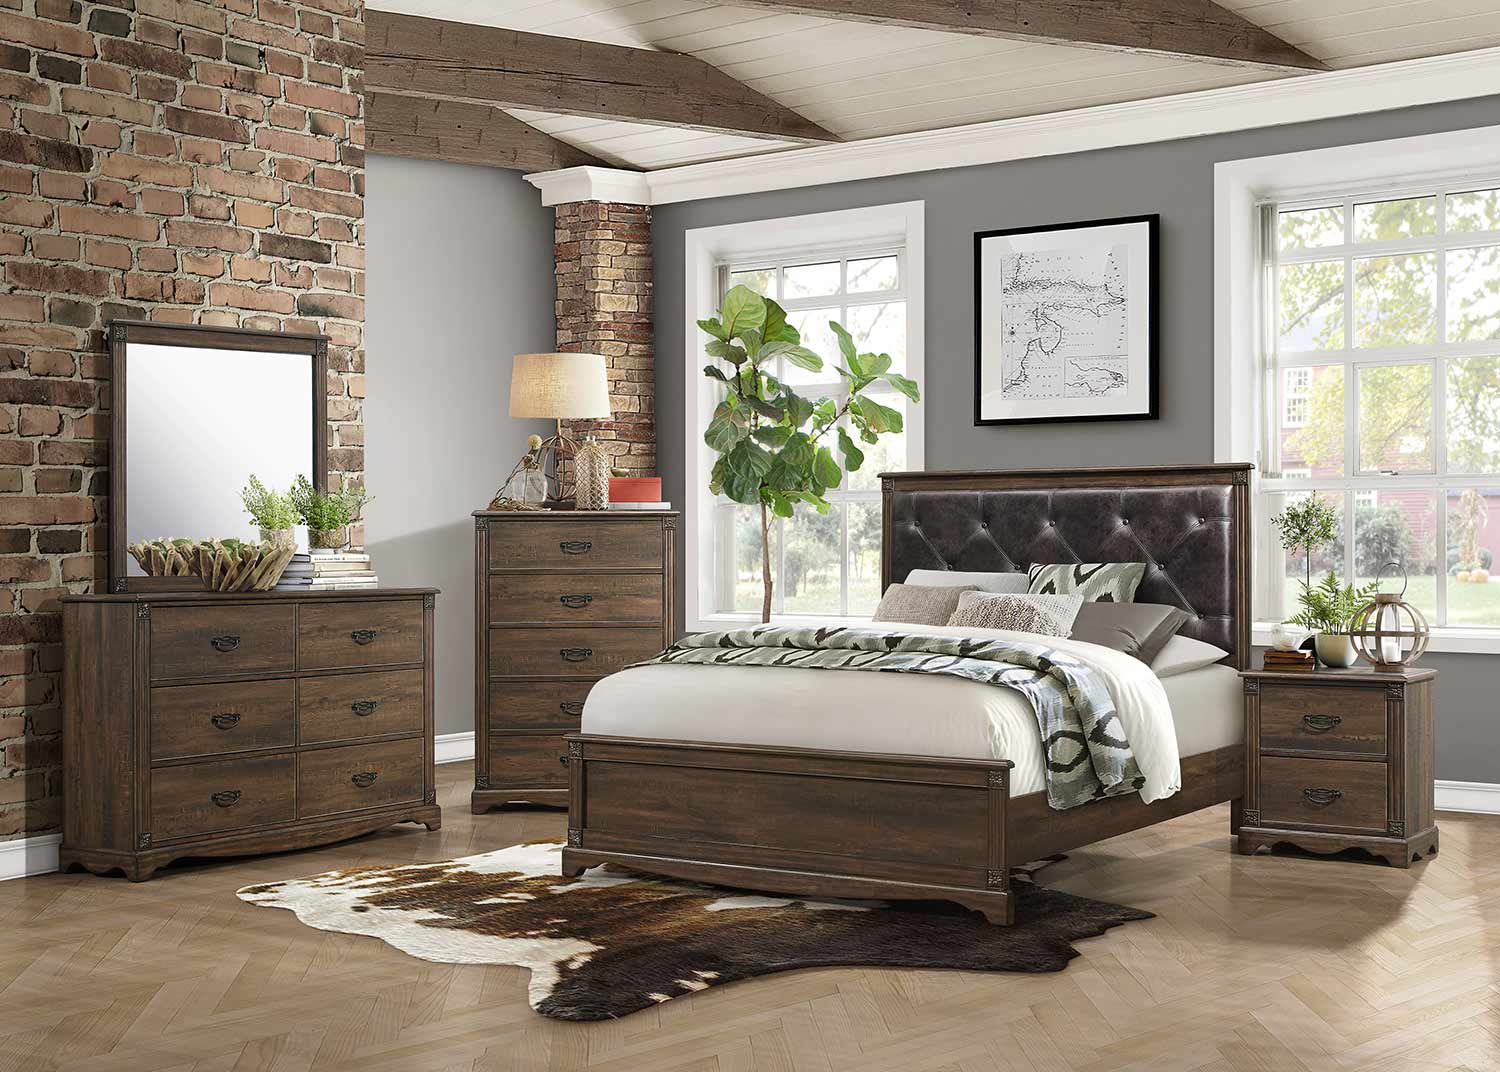 Homelegance Beaver Creek Bedroom Set - Rustic Brown